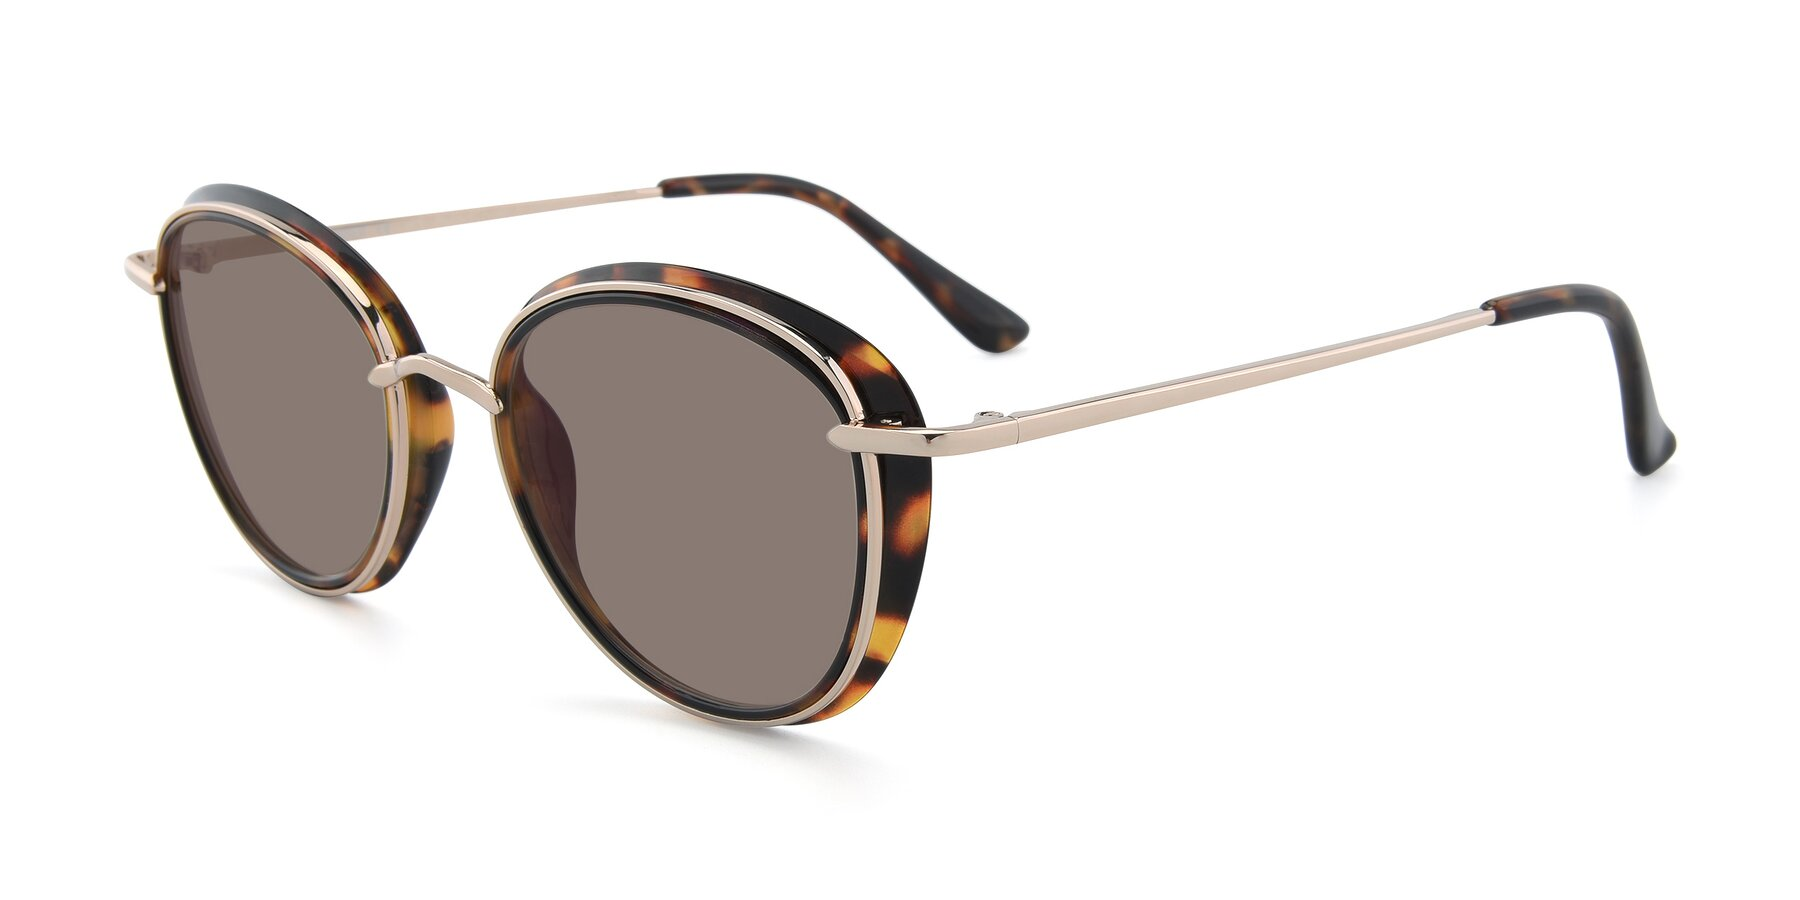 Angle of Cosmopolitan in Tortoise-Silver with Medium Brown Tinted Lenses